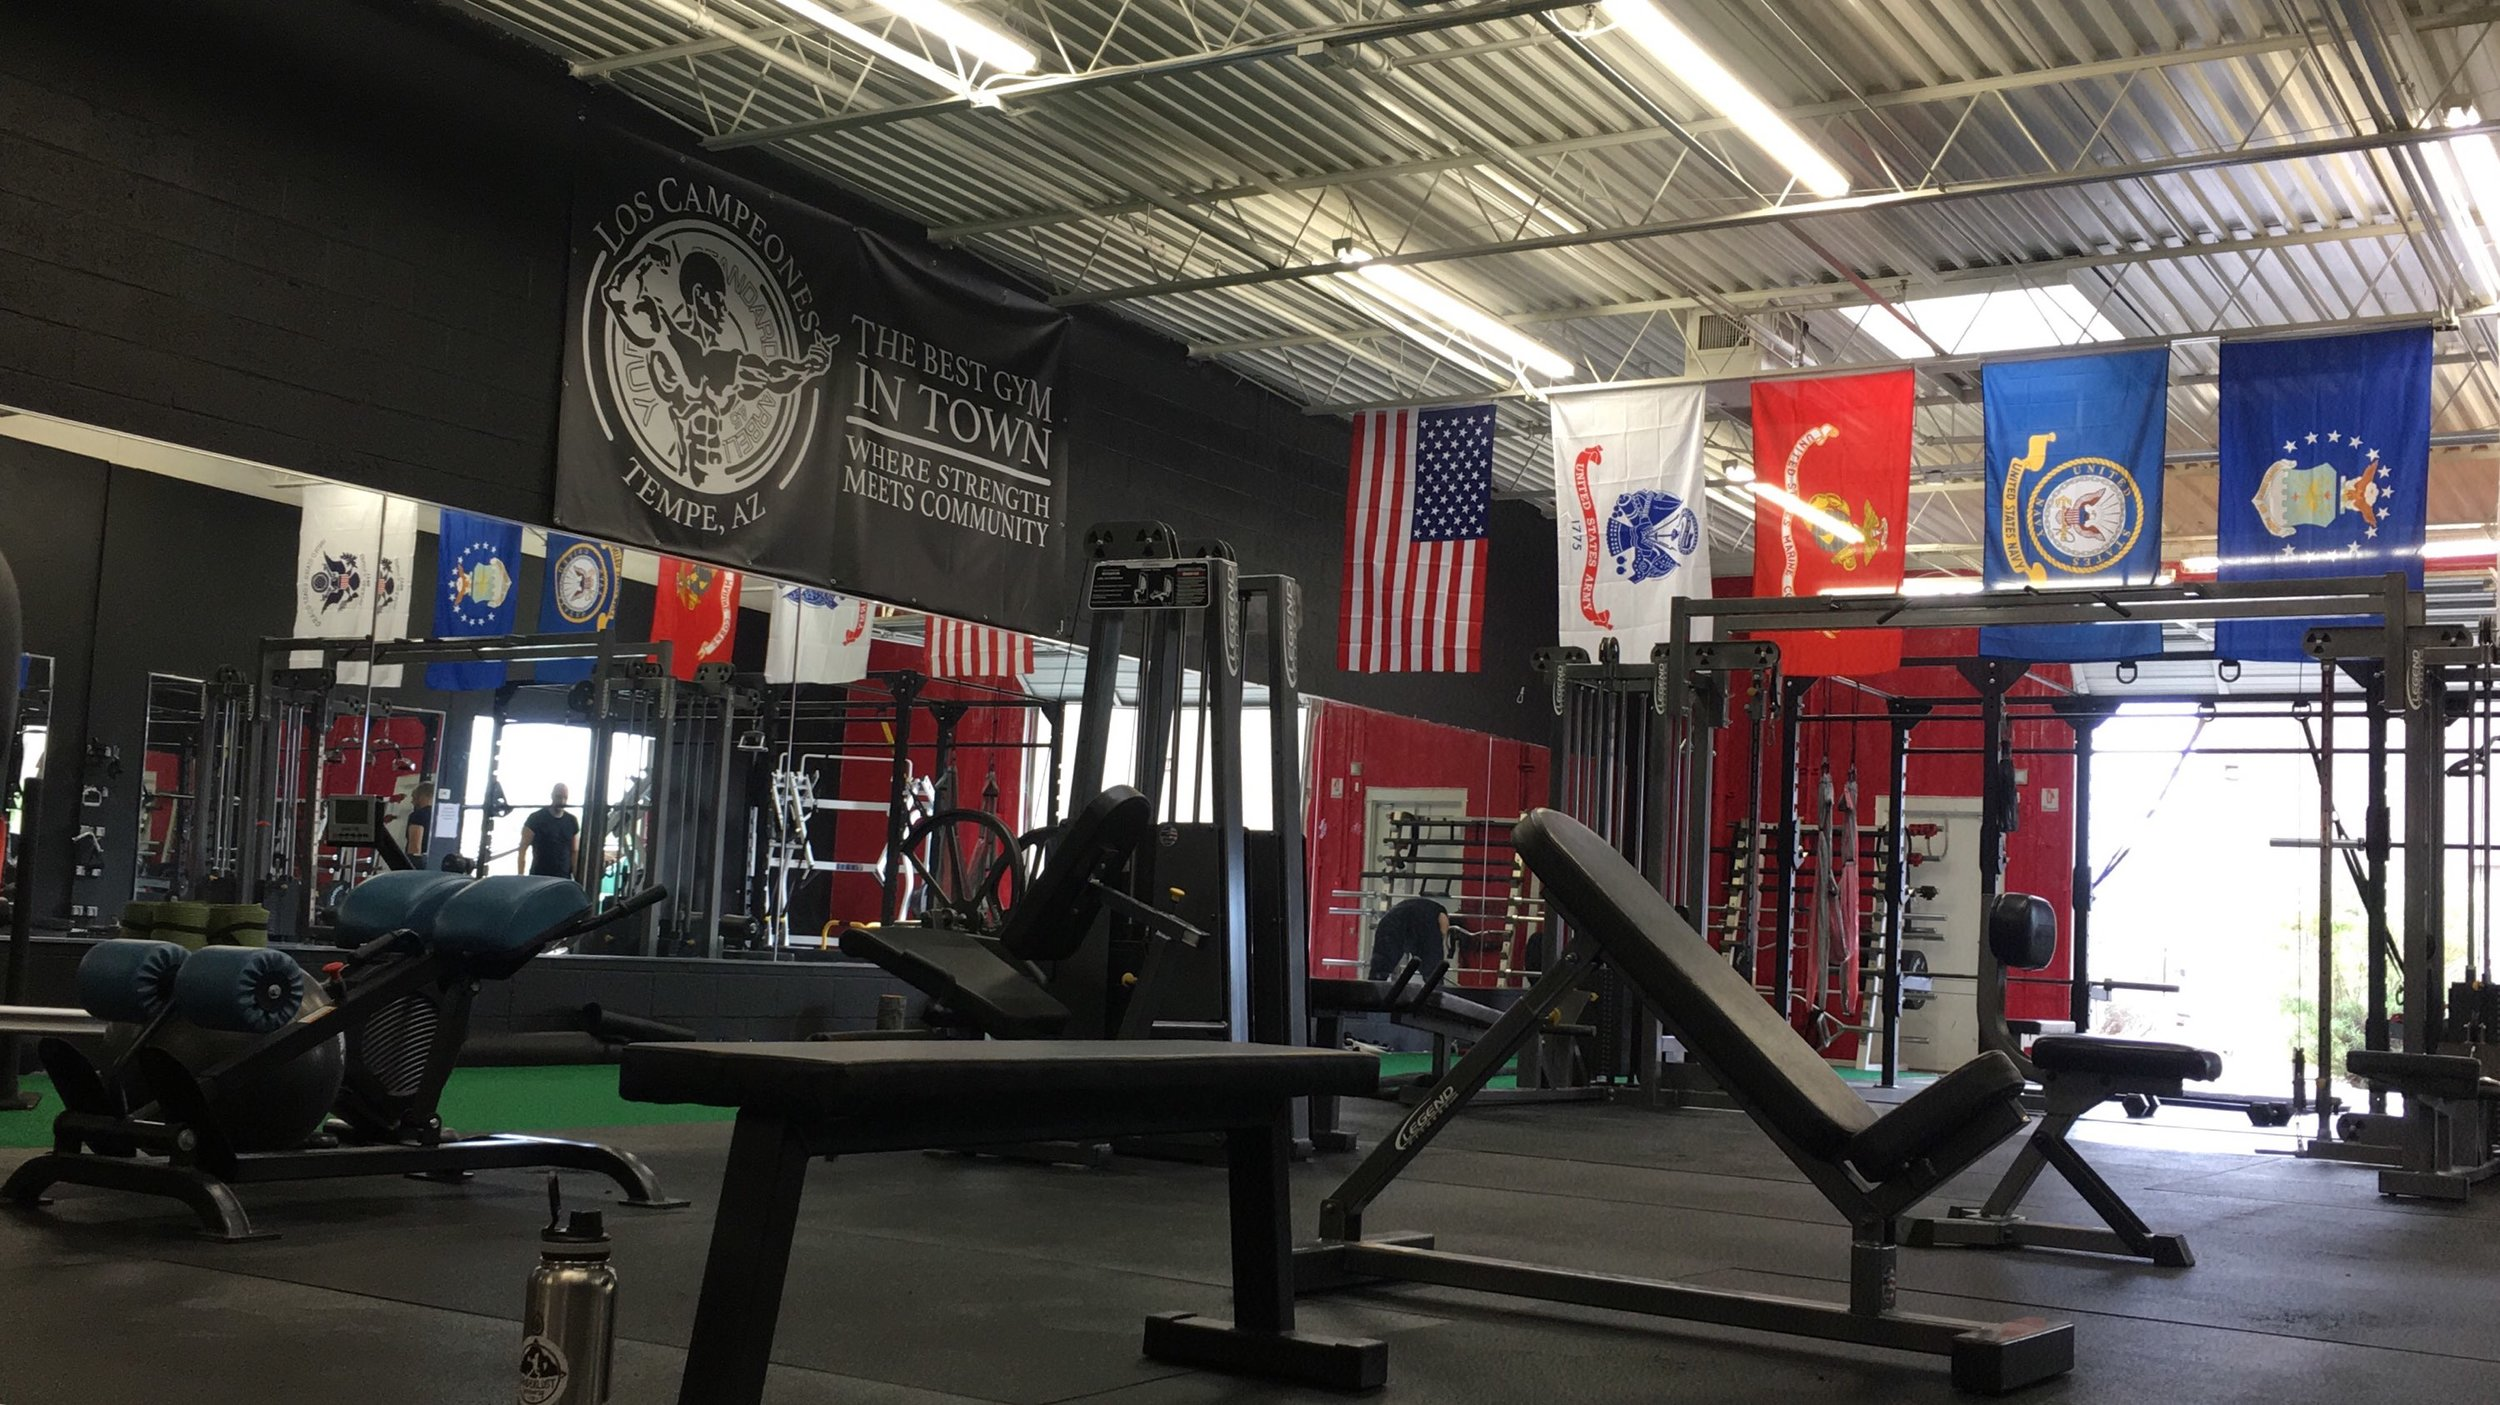 The Studio - We train out of Los Campeones (2153 E Cedar Street, Tempe AZ) a boutique studio dedicated for trainers. We train from Monday to Thursday in the evening, sessions start from 5 pm - 6pm, 6pm - 7pm and 8 pm to 9 pm. Bonus class on Saturday 9 am and sometimes we do workshop for weight loss.